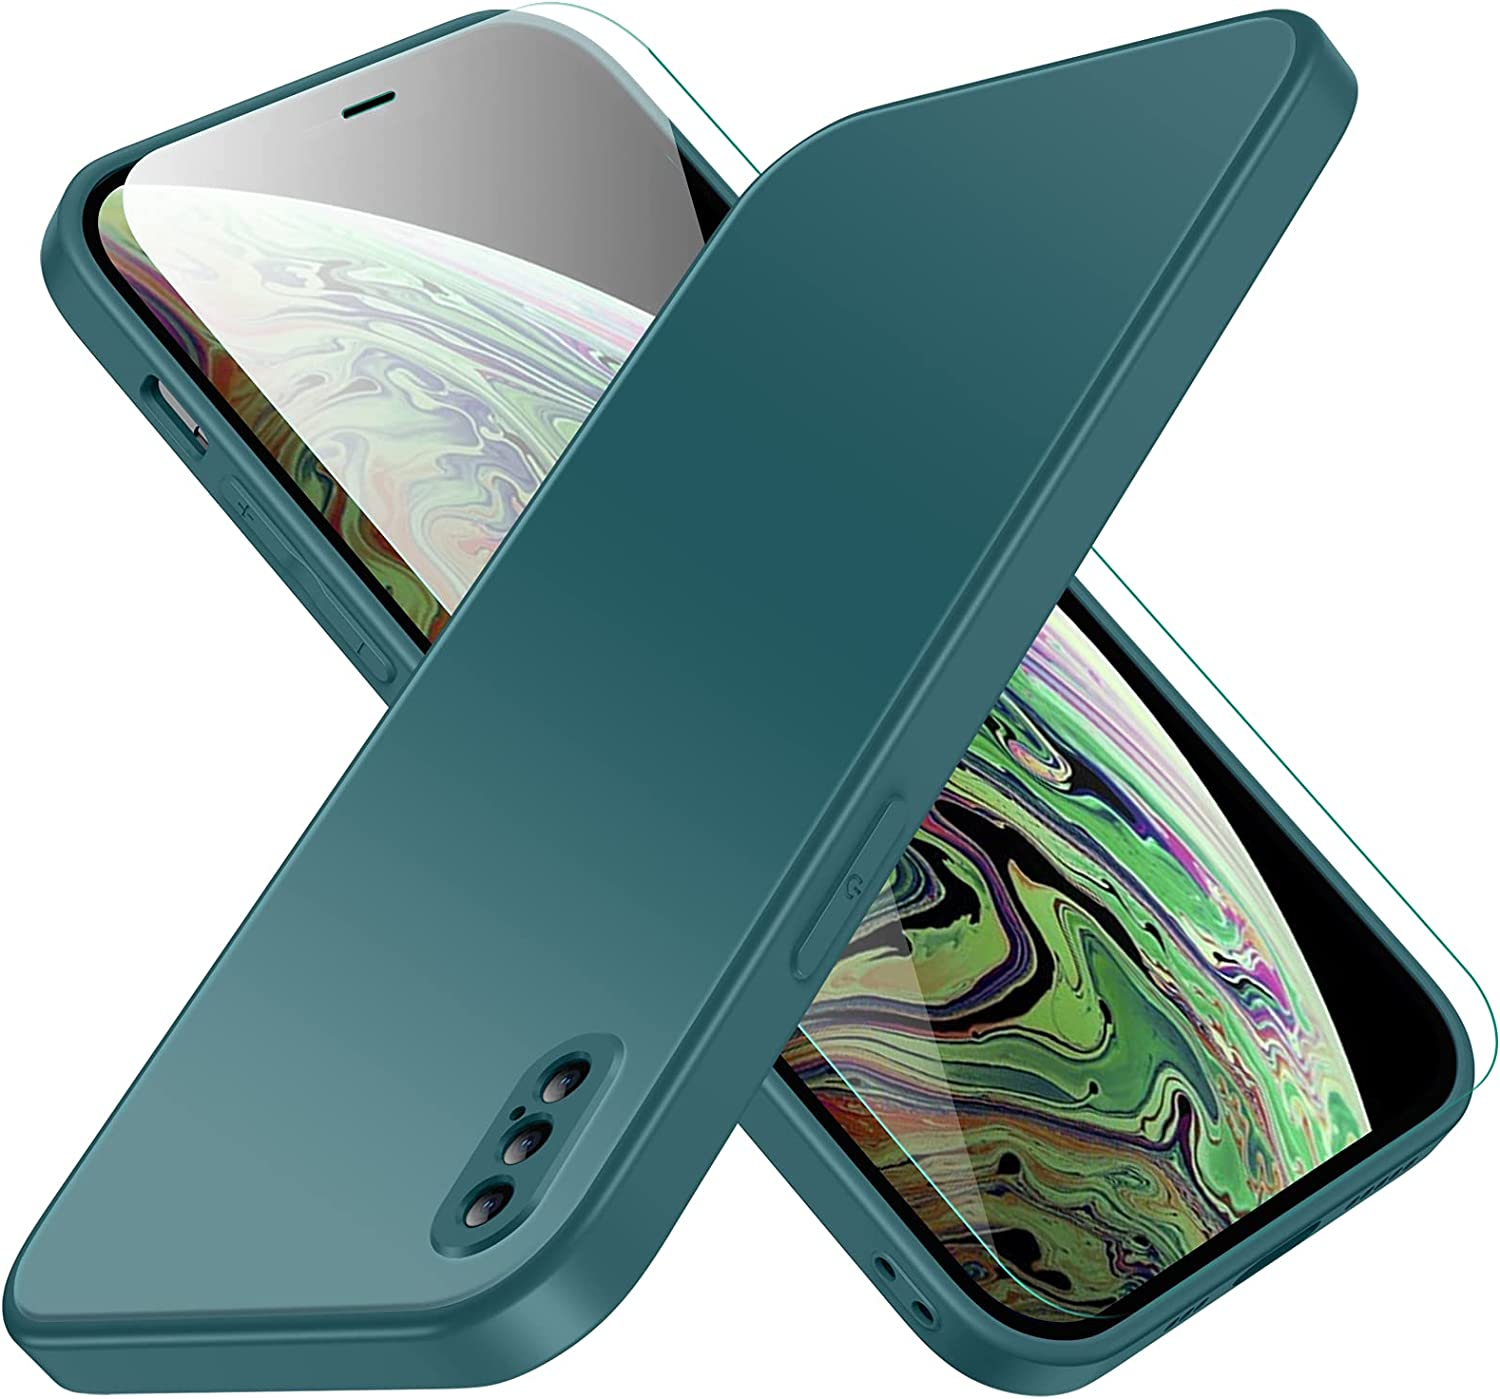 Compatible with iPhone Xs Max Case, Jonwelsy Luxury Soft Liquid Silicone Shockproof Protection Phone Case + Frosted Tempered Glass Back Cover for iPhone Xs Max (6.5 inch) (Midnight Green)